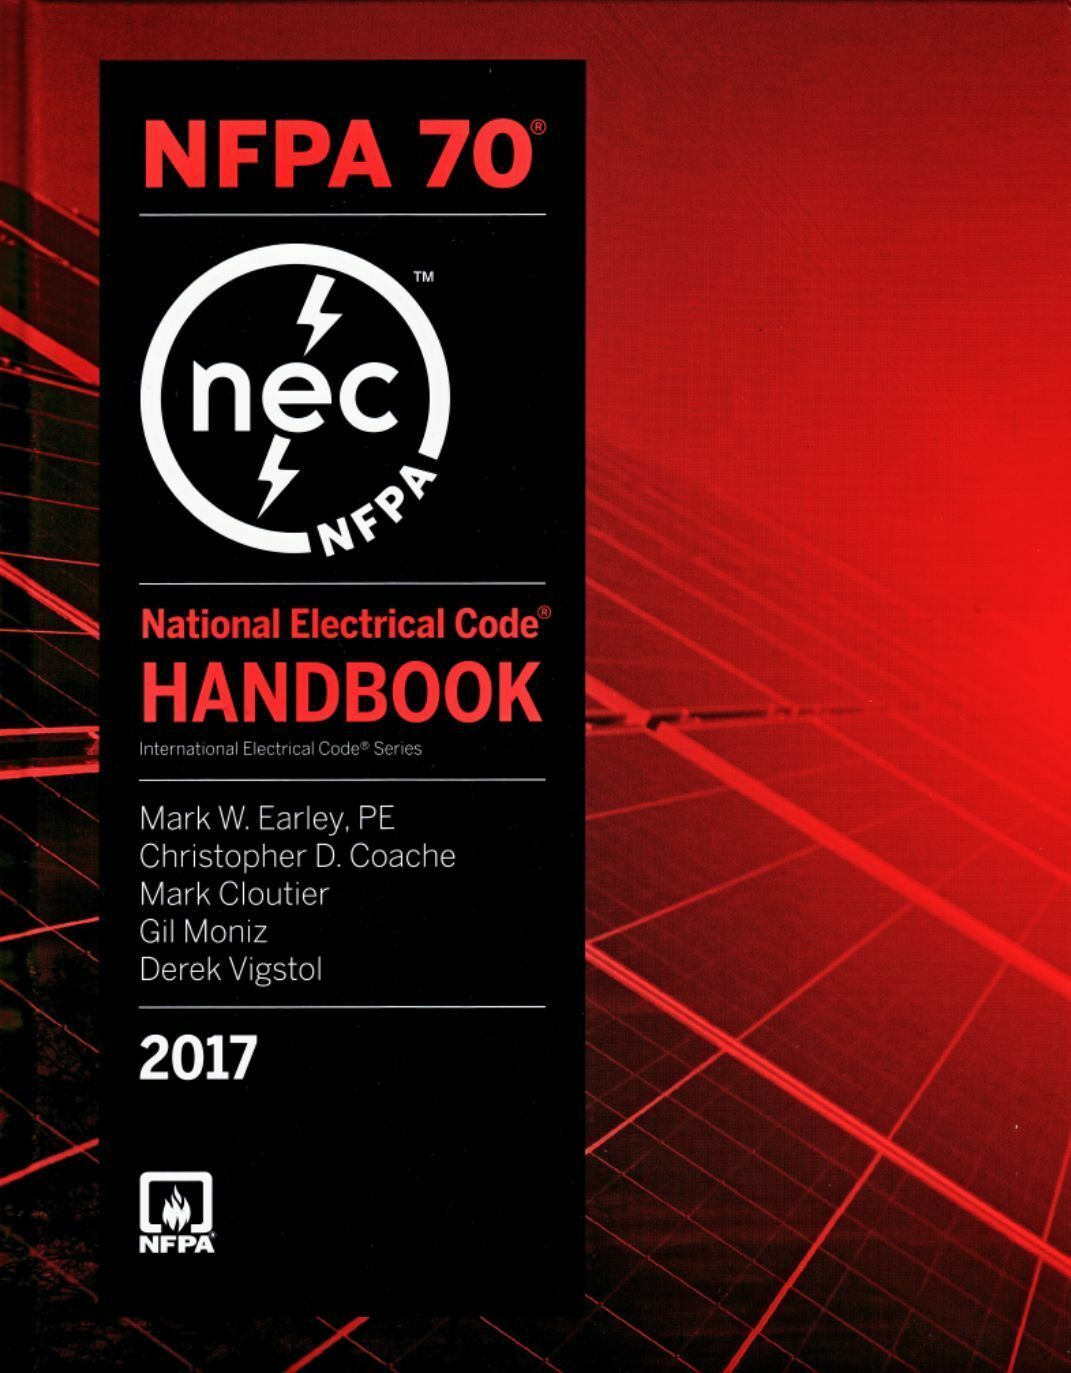 National electrical code books ebay nfpa 70 handbook national electrical code nec handbook 2017 edition new fandeluxe